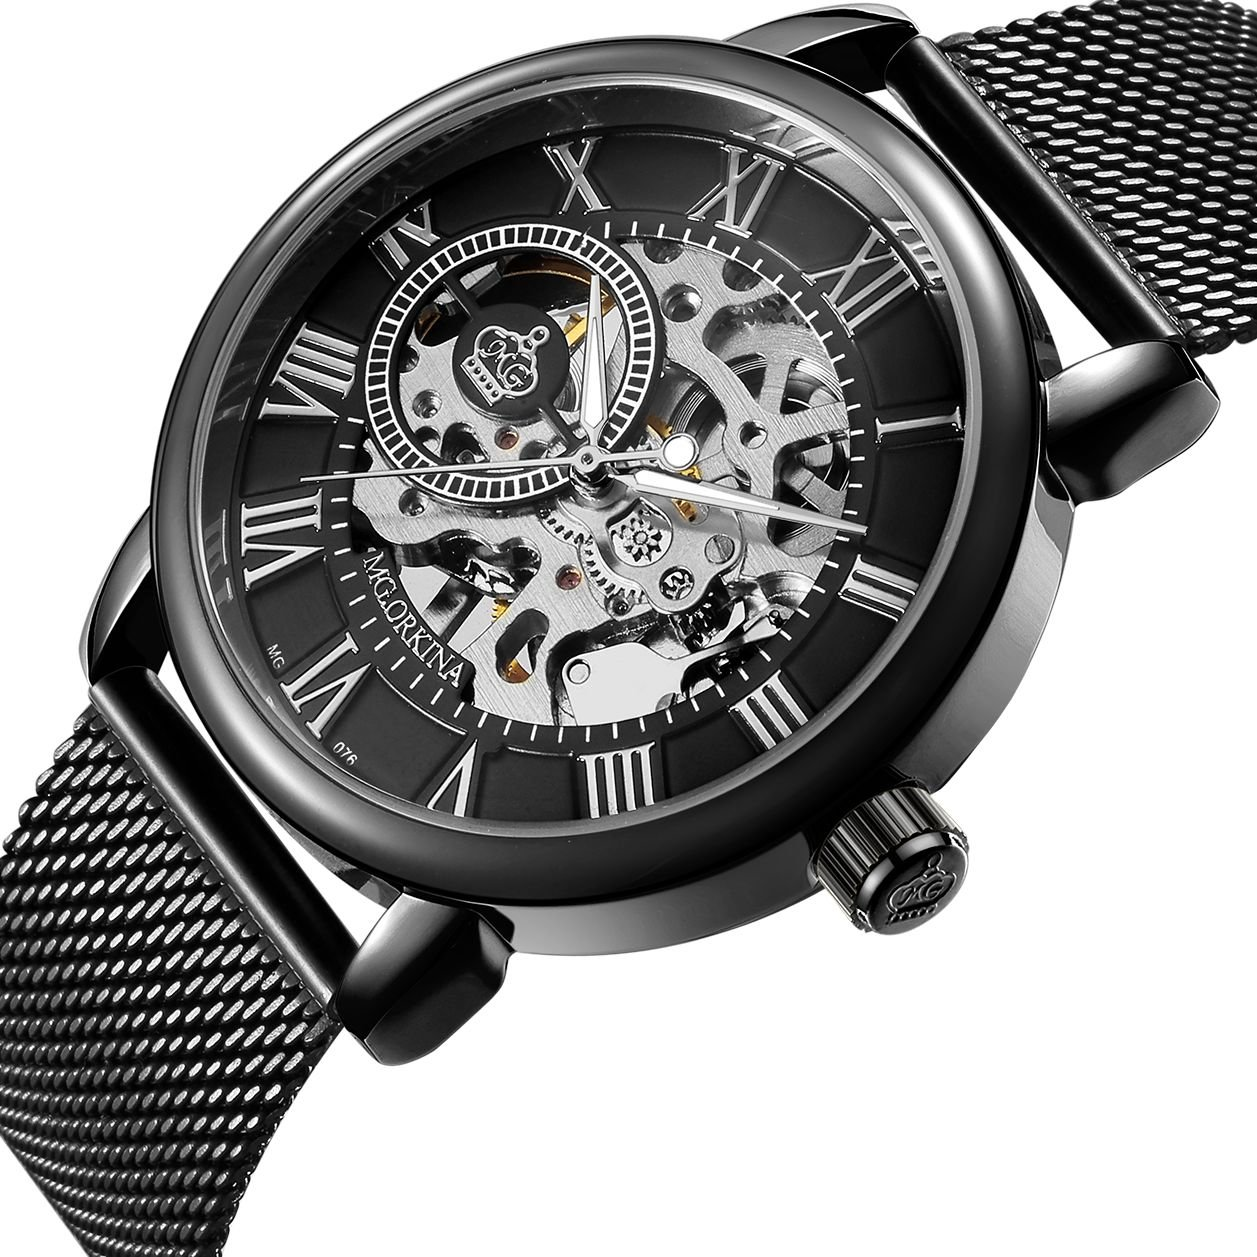 Sweetbless Wristwatch Men's Royal Classic Roman Index Hand-Wind Mechanical Watch (Black-Black)